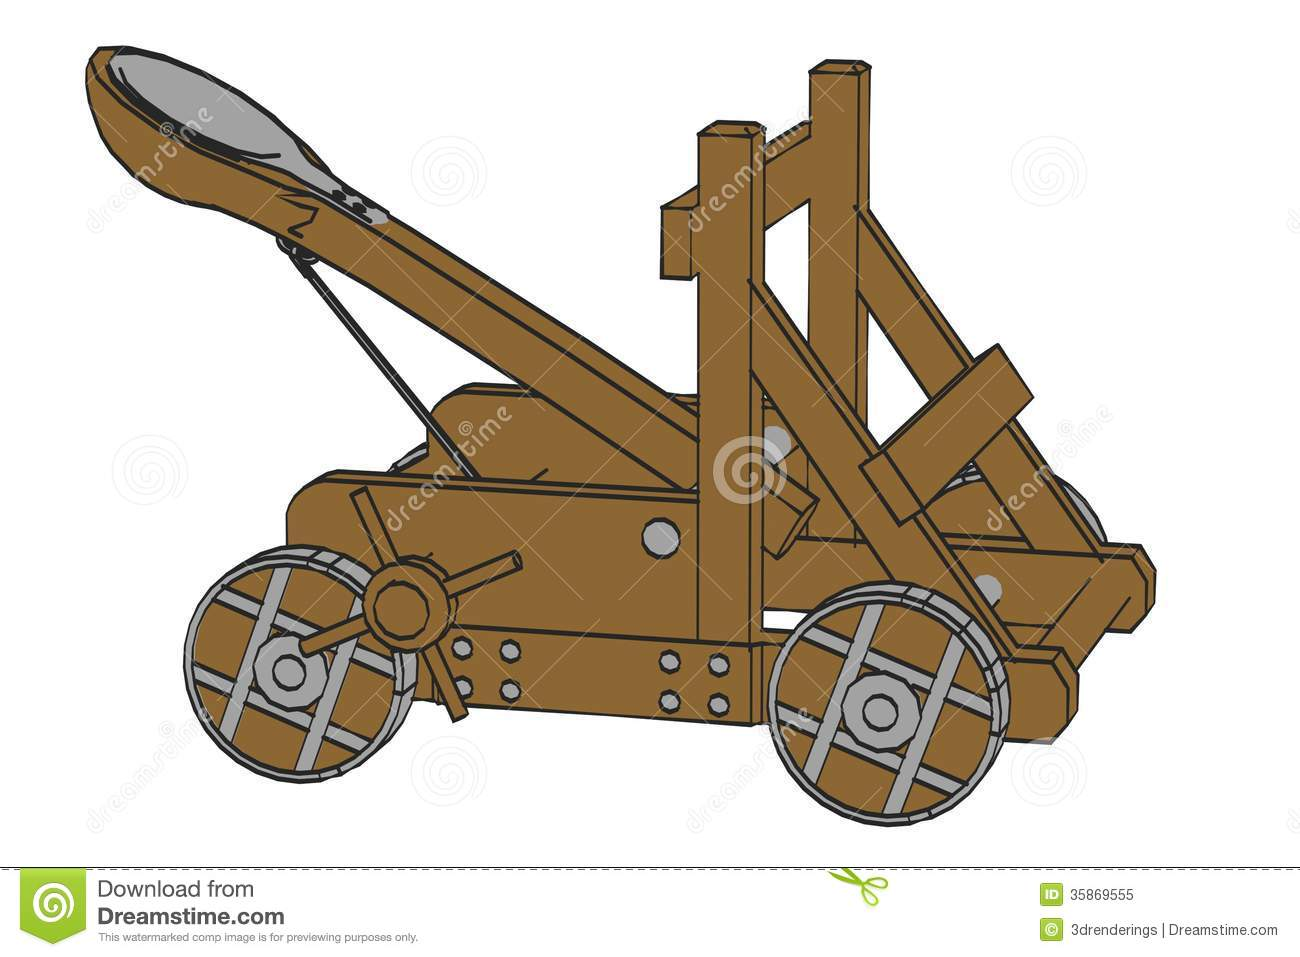 Catapult clipart graphic library download Catapult Clipart Group with 20+ items graphic library download